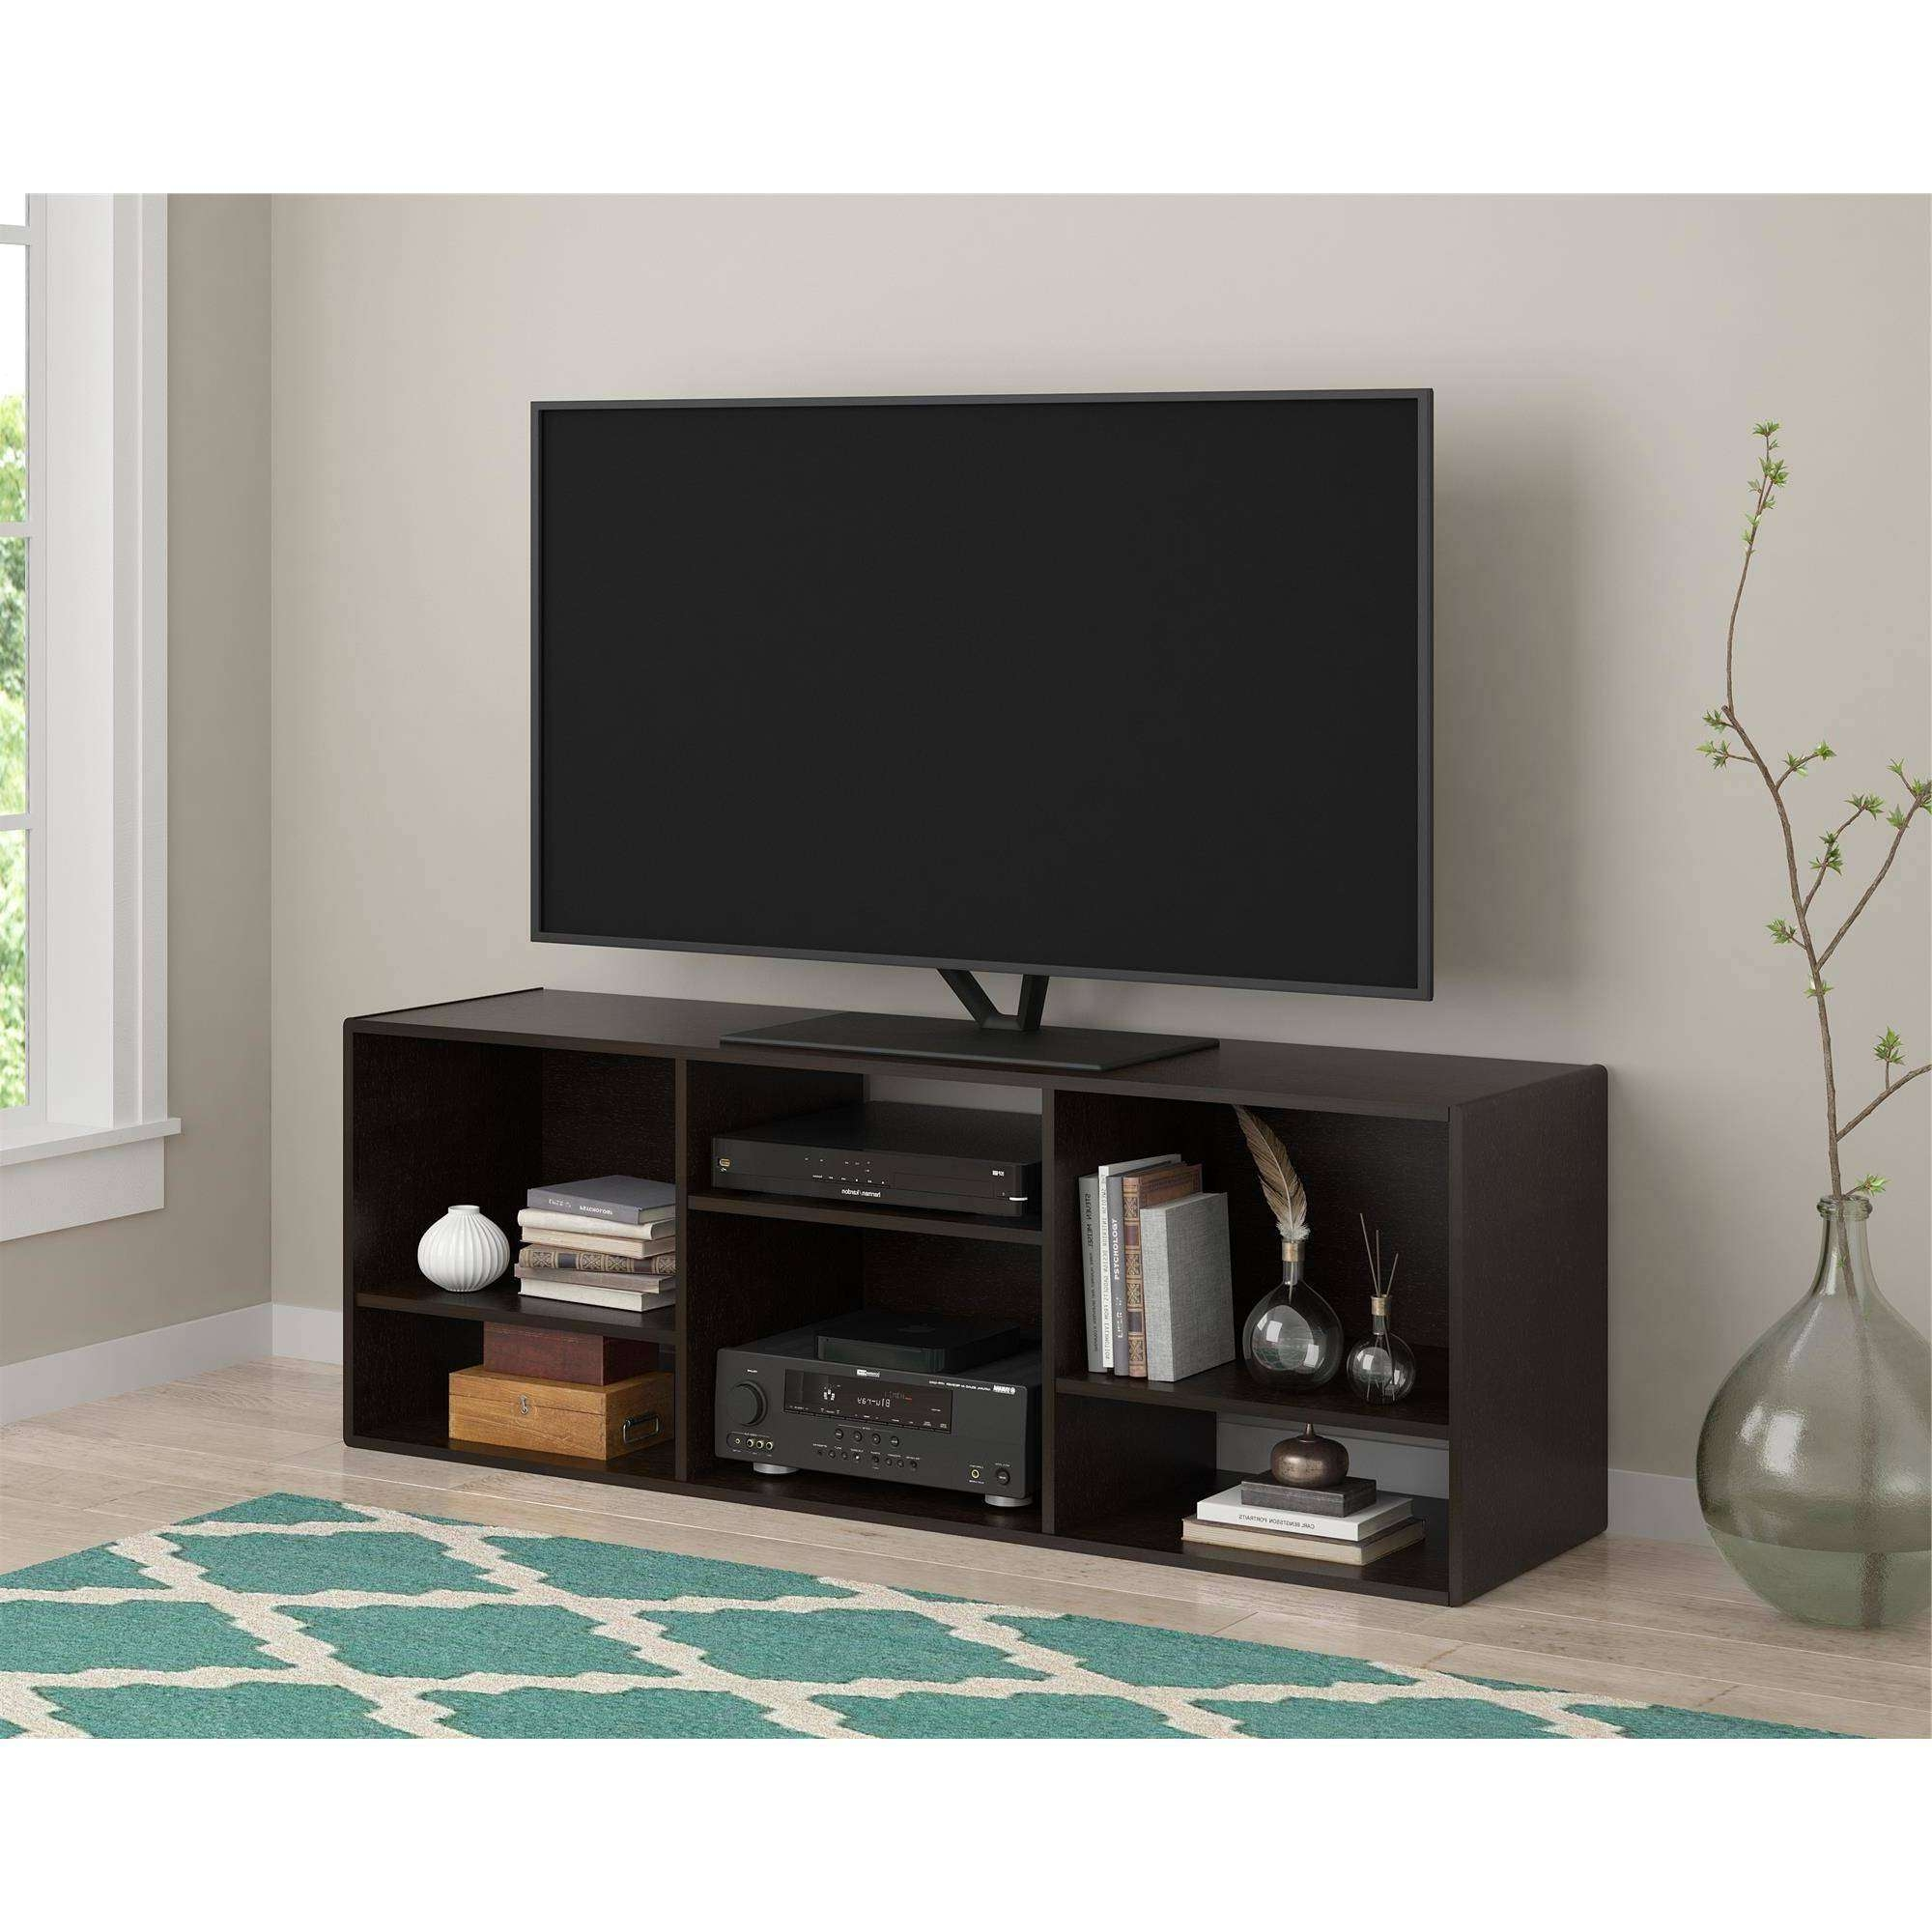 Tv : Amazing Tv Stands For Plasma Tv Mount It Tv Stand With Mount With Tv Stands For Plasma Tv (View 10 of 15)